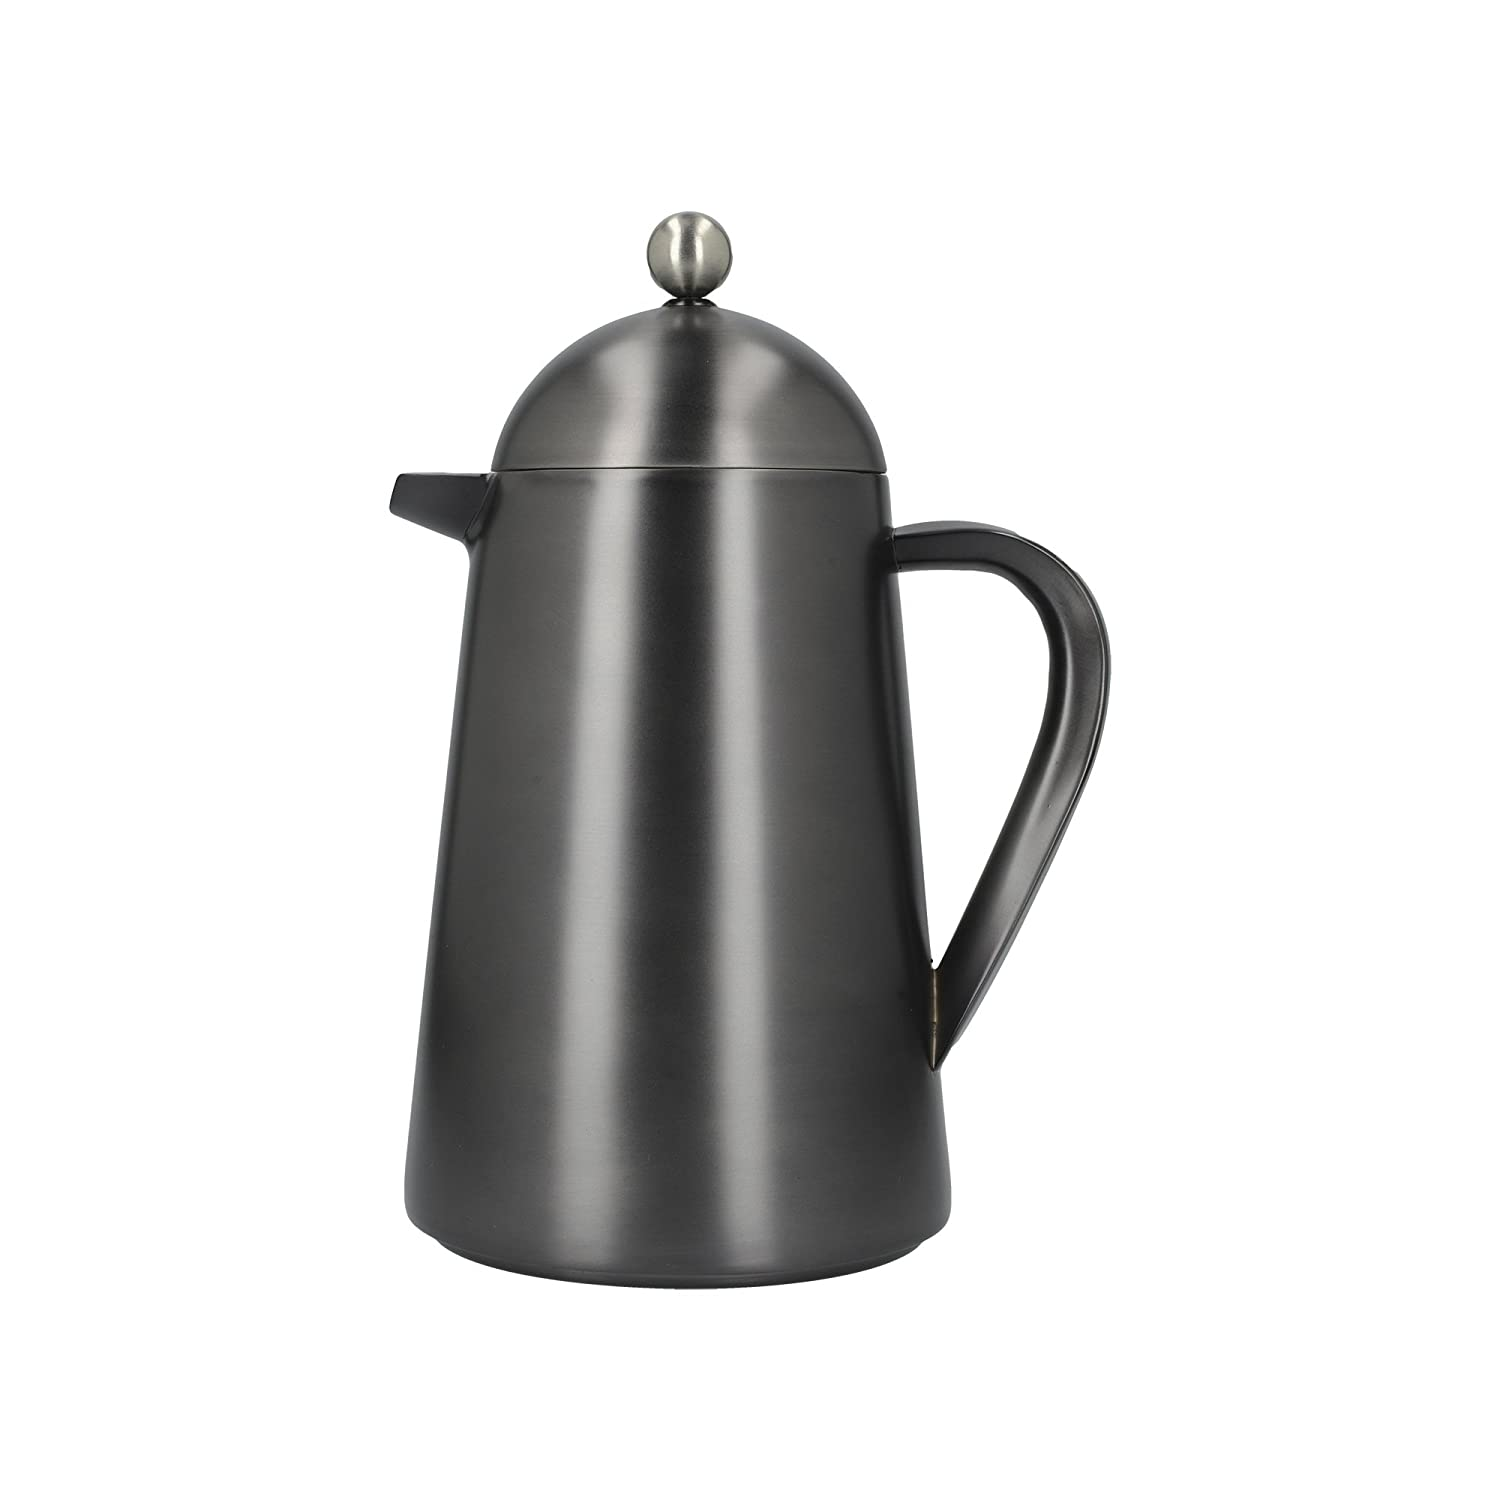 La Cafetière Edited Thermique Insulated Cafetière/French Press Coffee Maker, 350 ml (3 Cup) - Gun Metal La Cafetiere (UK) Limited 5233008